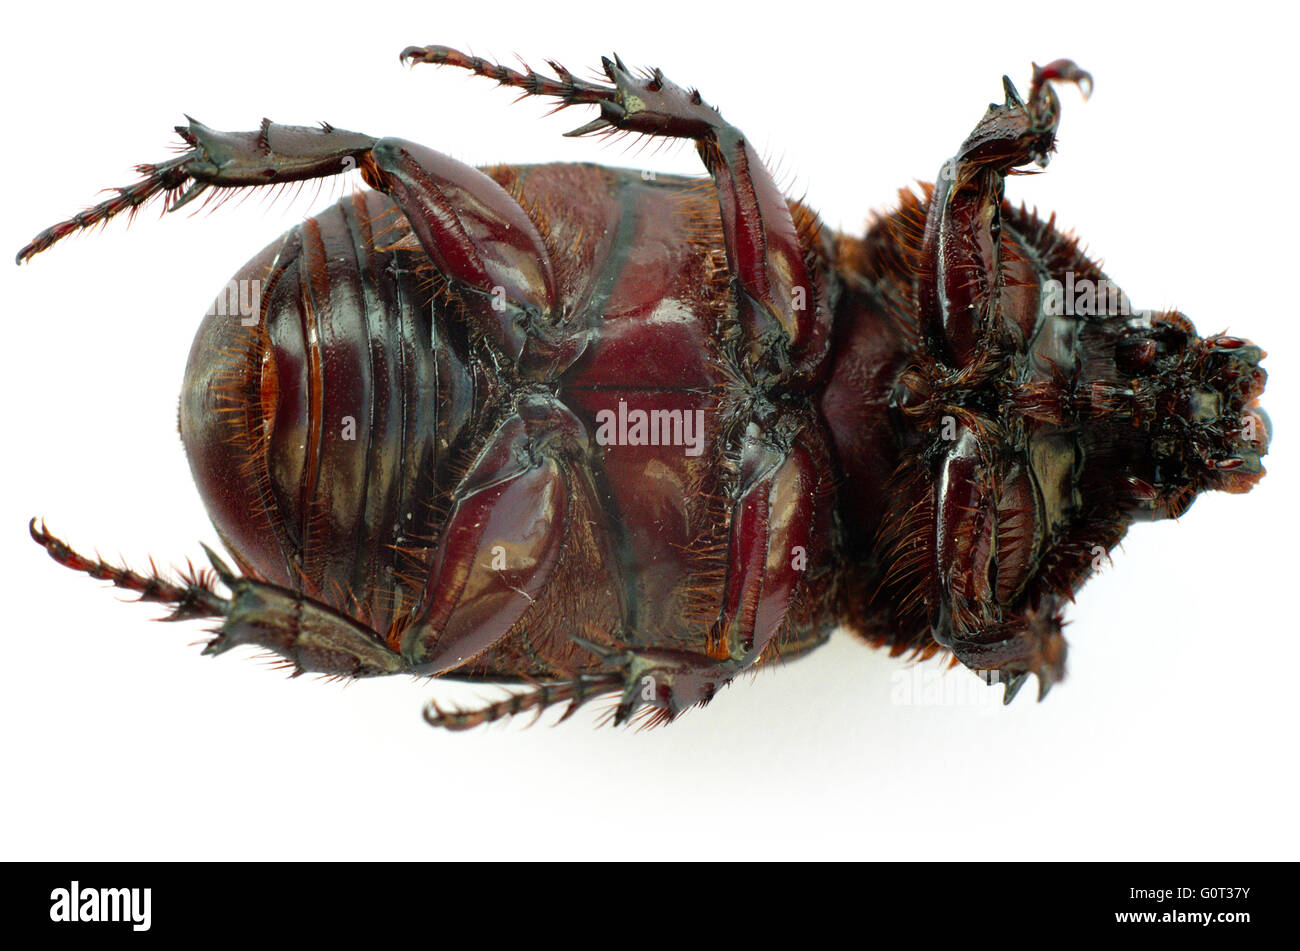 The underside of an Asiatic Rhinoceros beetle (Coconut beetle) on white background. Stock Photo